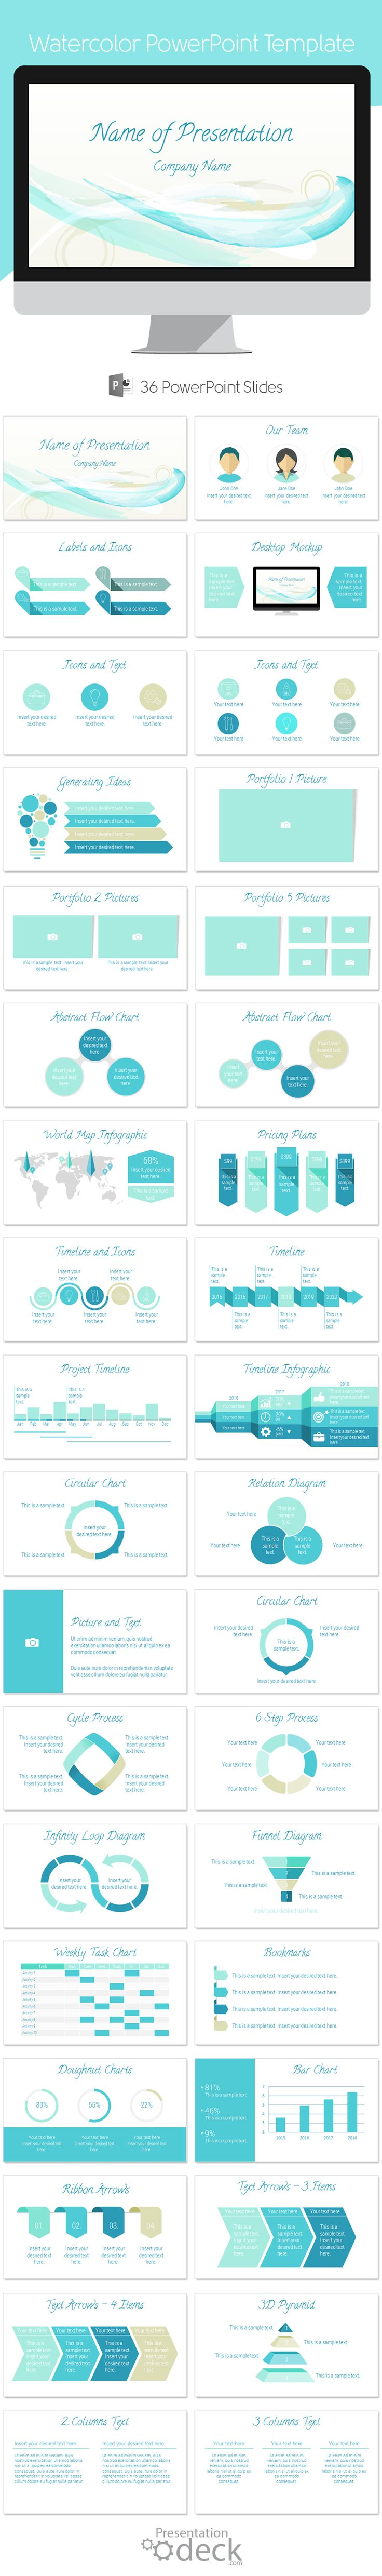 Abstract Watercolor PowerPoint template with 36 pre-designed slides. This template is multipurpose and can be used with any presentation topics. #powerpoint #powerpoint_templates #watercolor #presentations